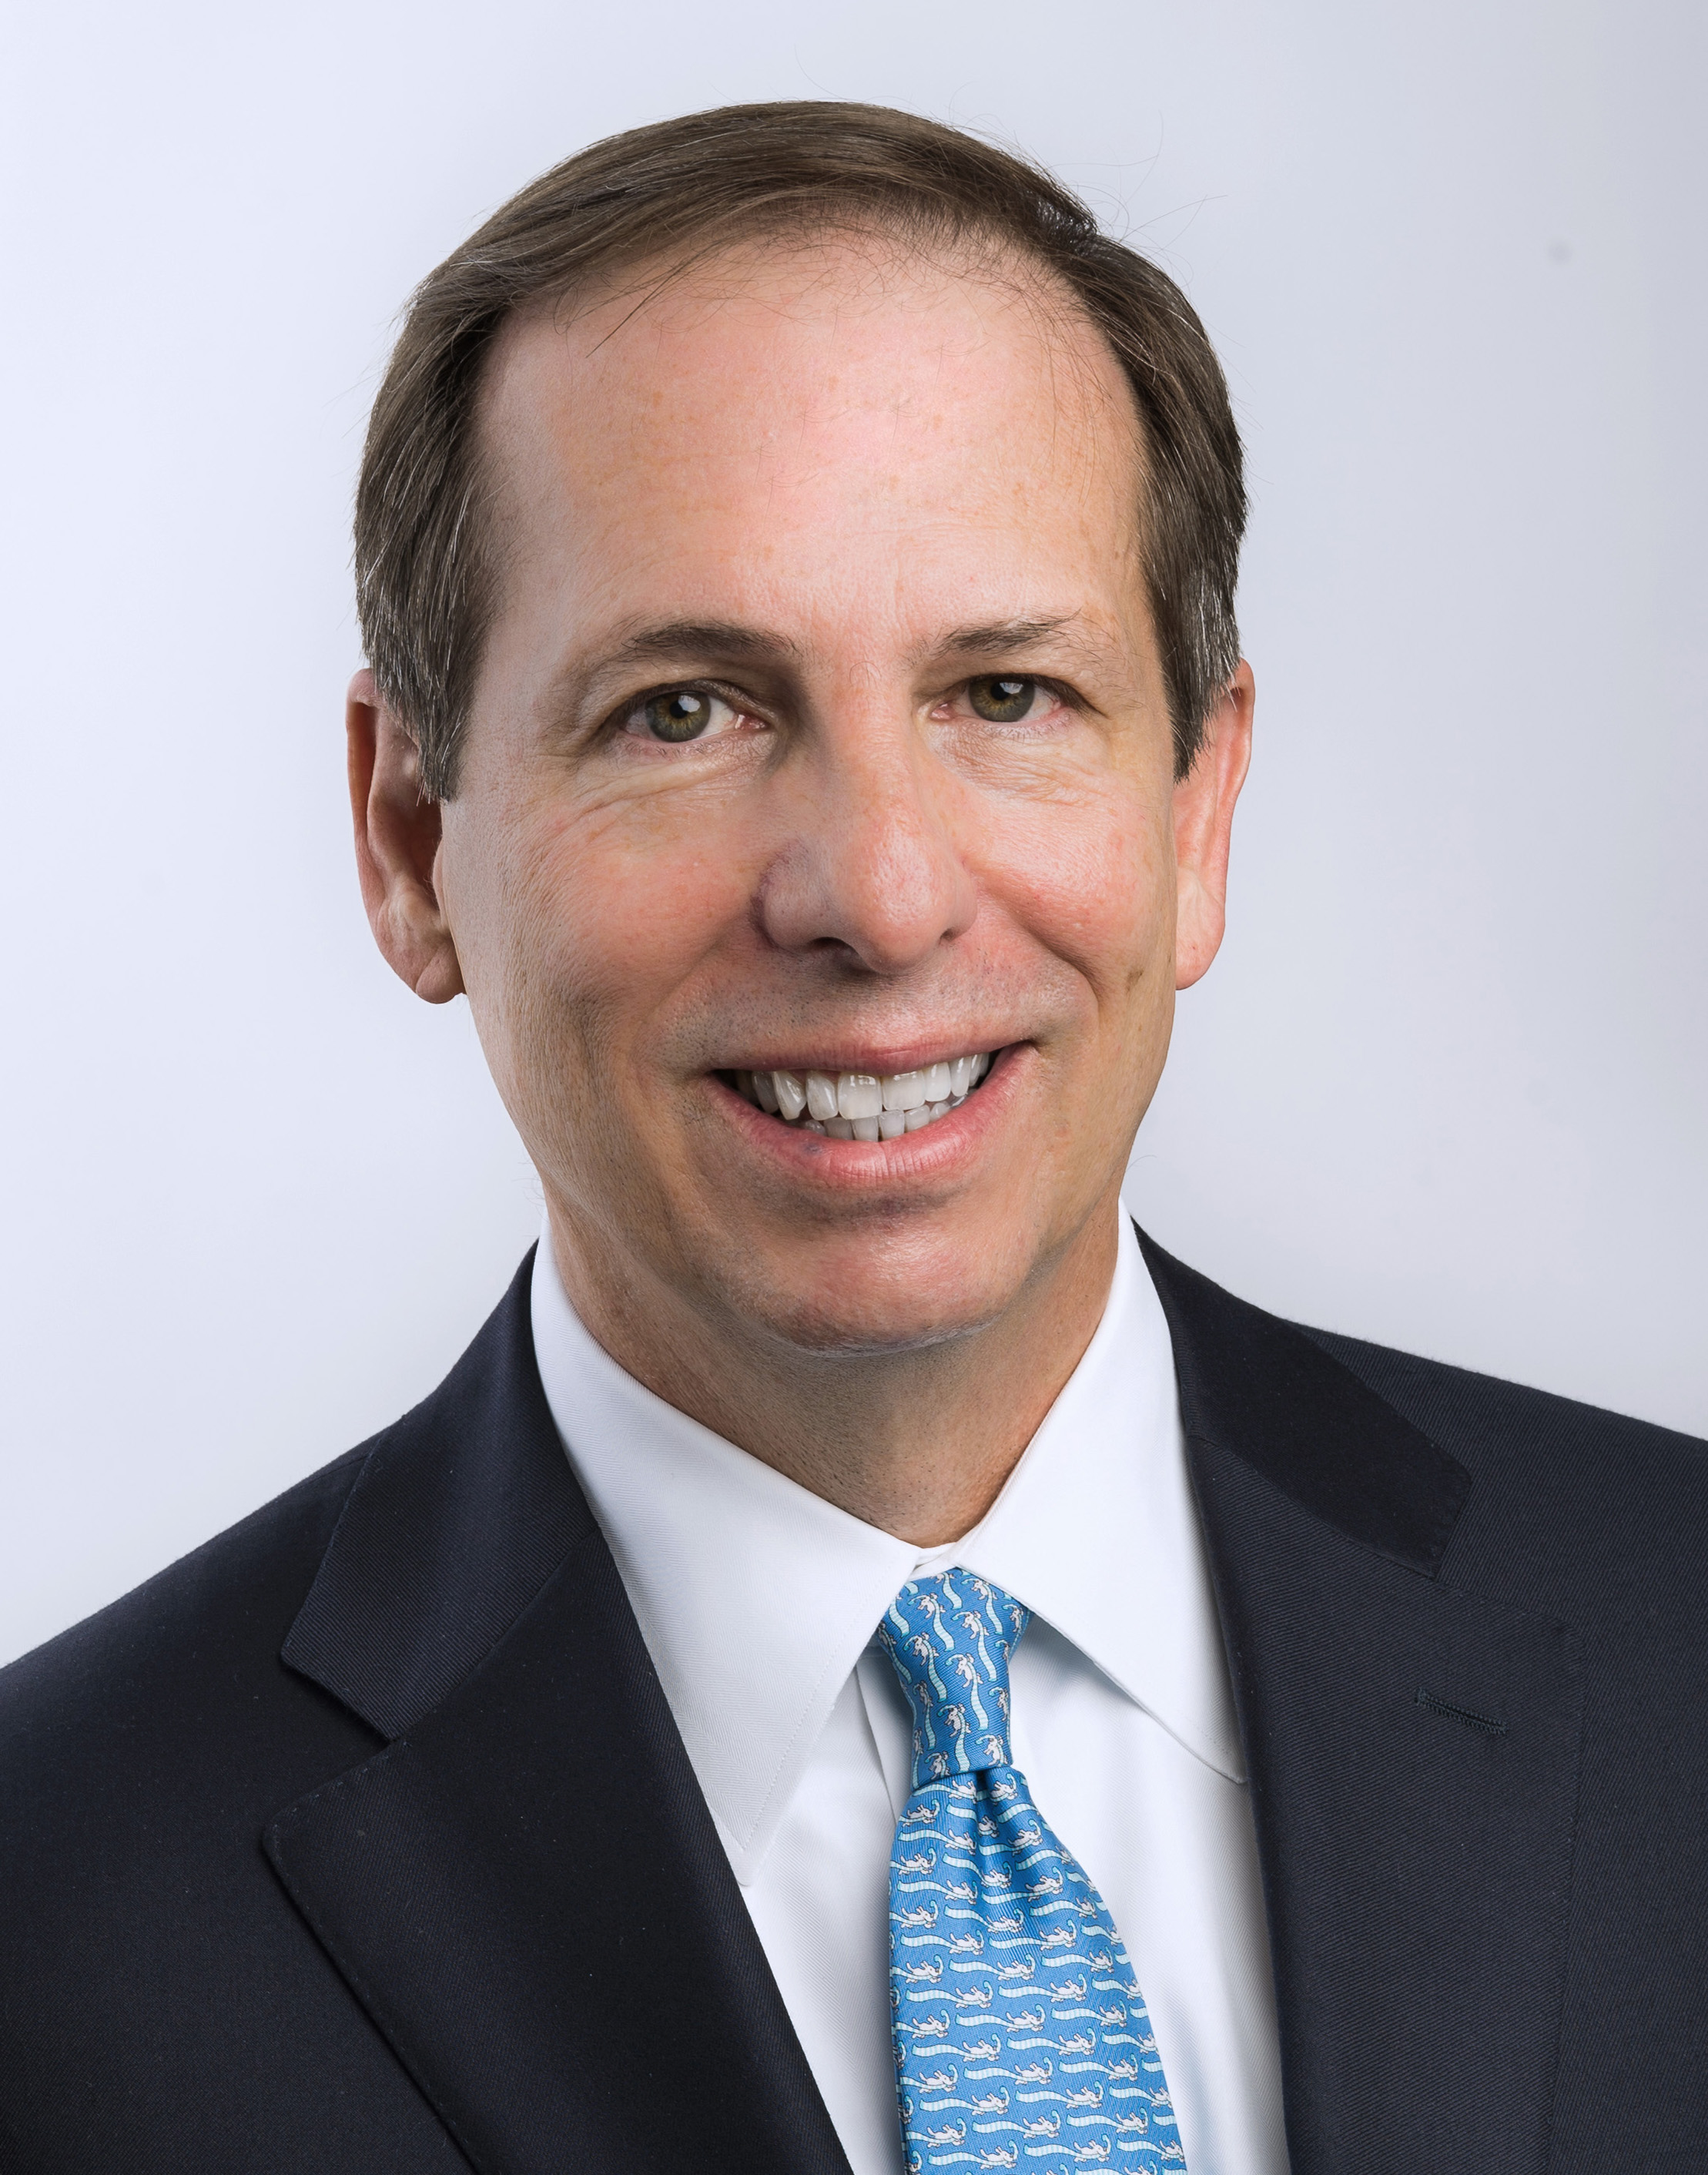 Profile image of Steven L. Cross